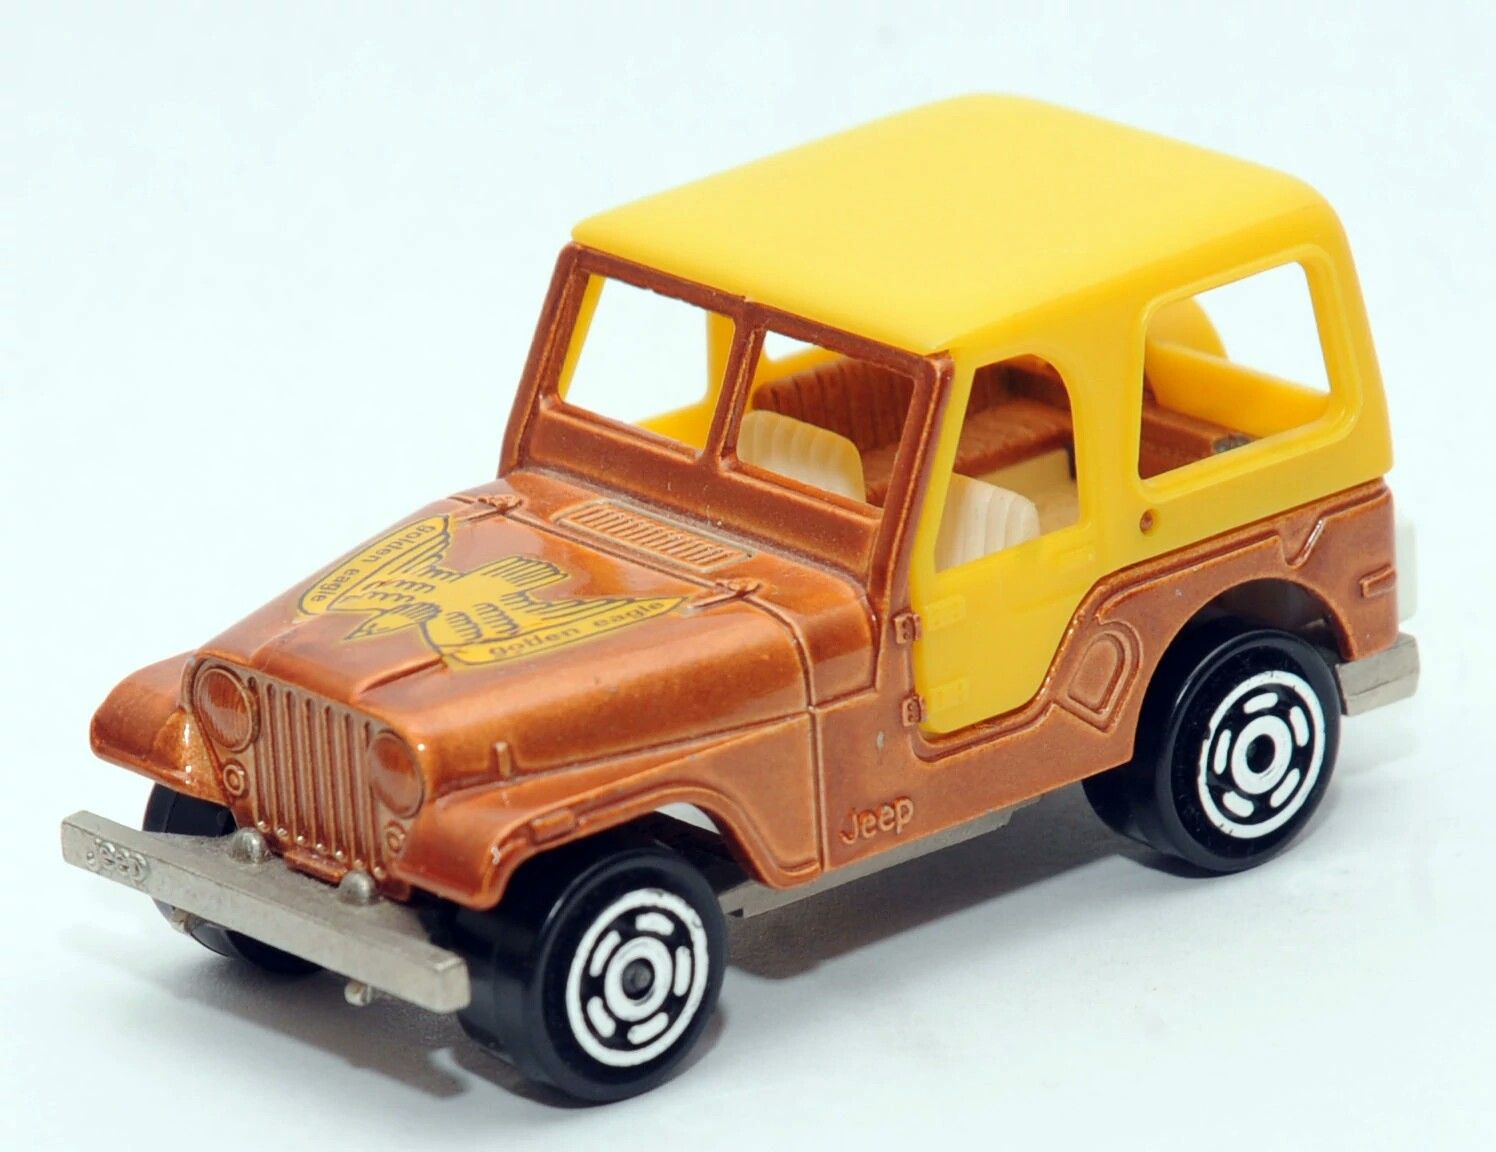 Jeep car toys  Majorette Jeep  Hot wheelscars and trucks  Pinterest  Jeep cj